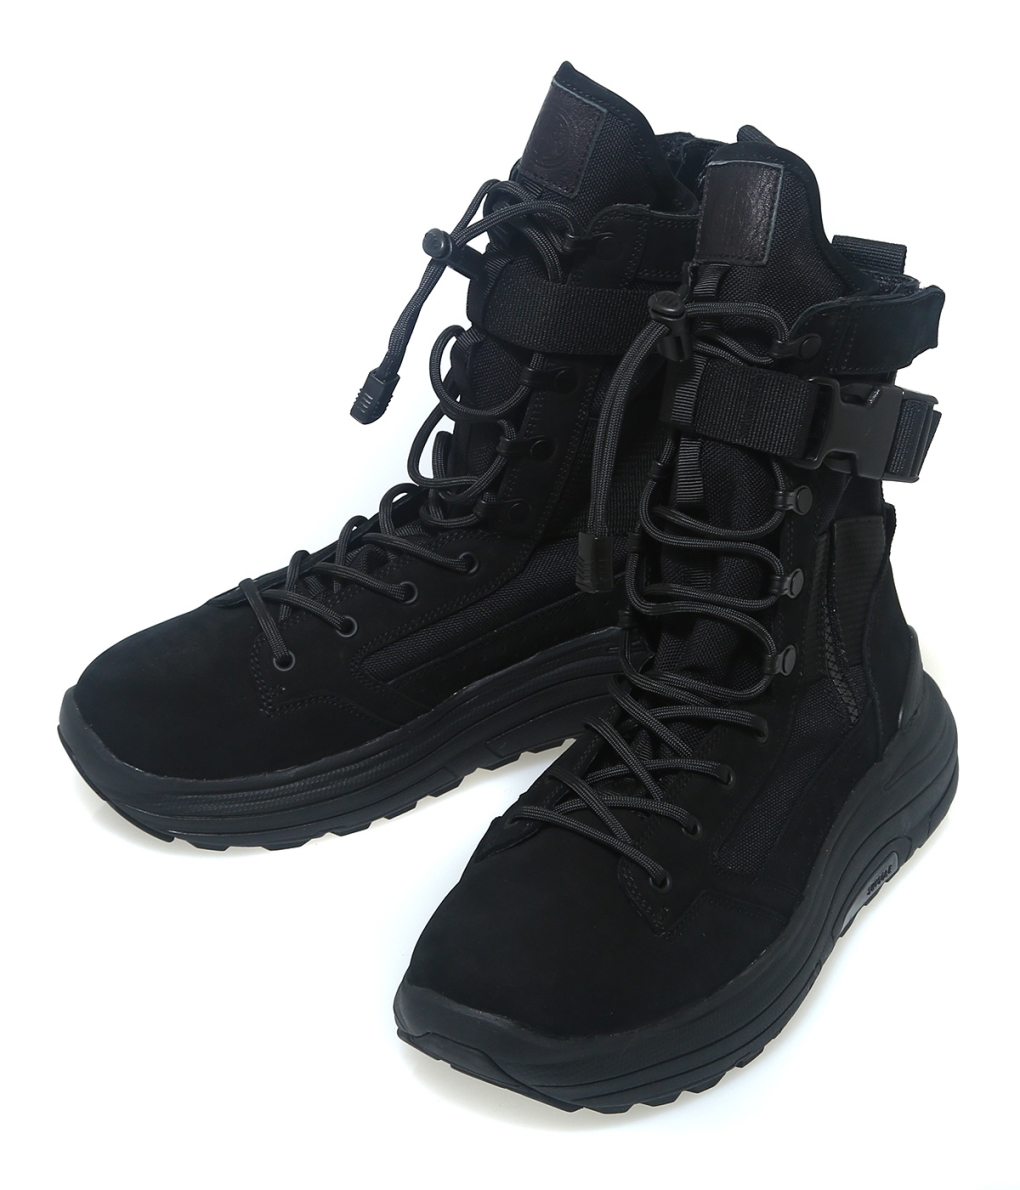 MOUT RECON TAILOR / マウトリーコンテーラー : Recon TAC Boots : マウトリーコンテーラー リコン タック ブーツ ハイカット ミリタリー メンズ : MOUT-030 【MUS】